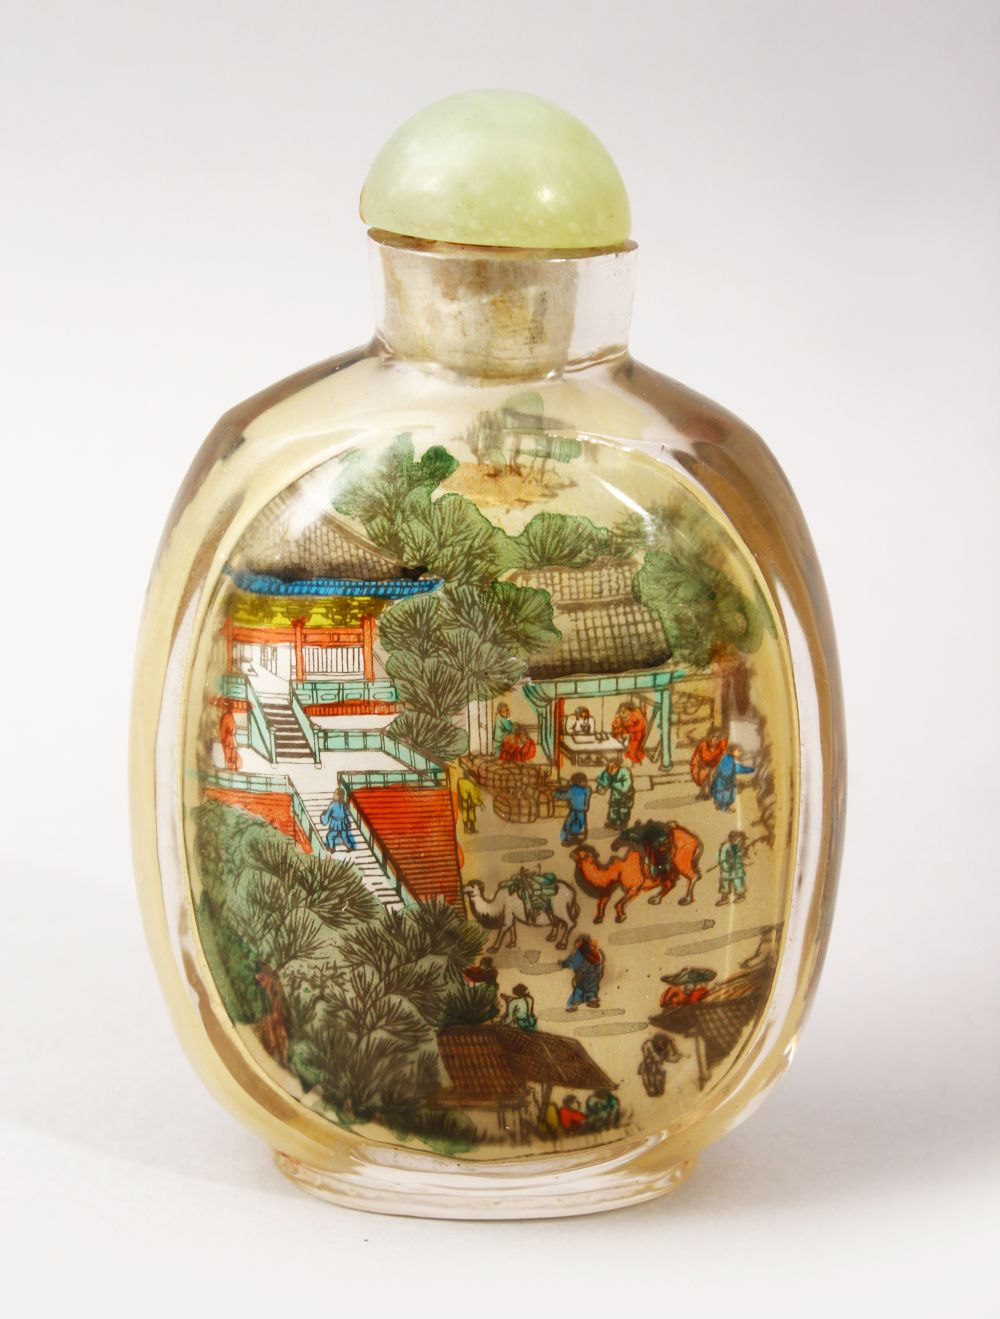 A GOOD 19TH / 20TH CENTURY CHINESE REVERSE PAINTED GLASS SNUFF BOTTLE, depicting scenes of figures